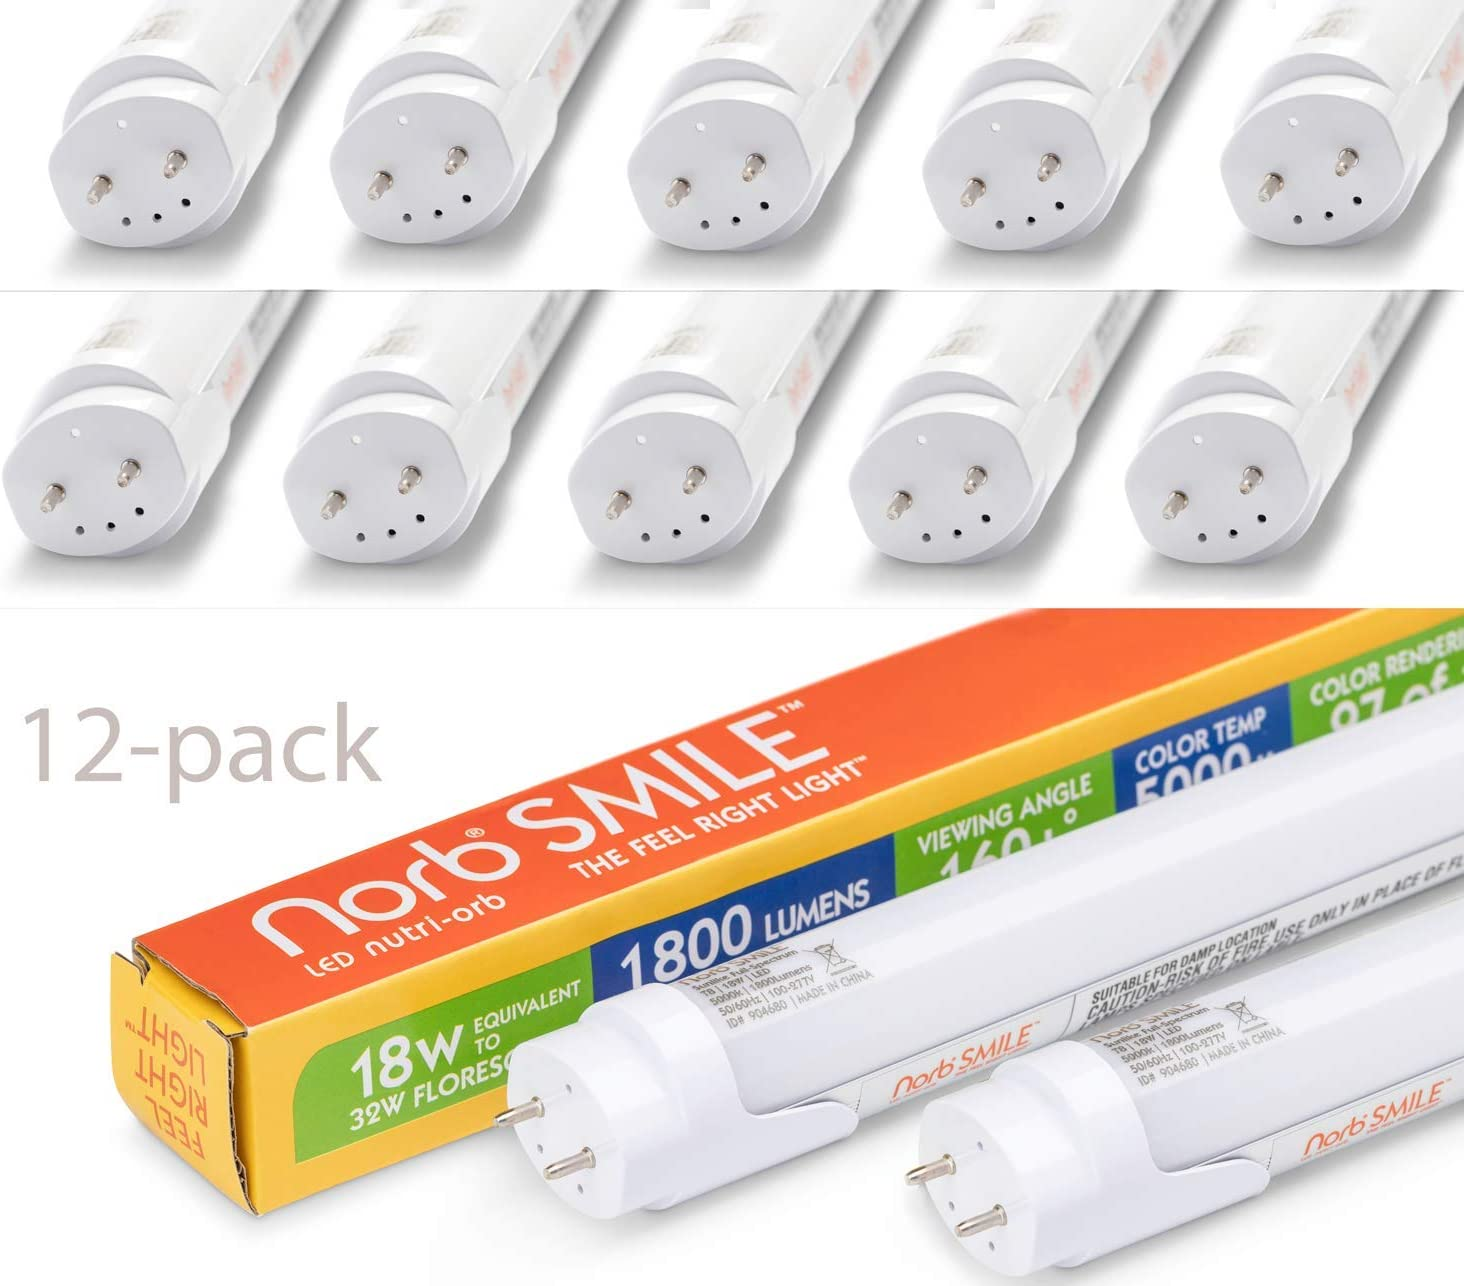 Fluorescent Bulb Replacement Near Perfect Natural Color Supplement to SAD Light Advanced Full Spectrum T8 48 LED Bulb Sunlike Spectrum for Mood Performance Energy